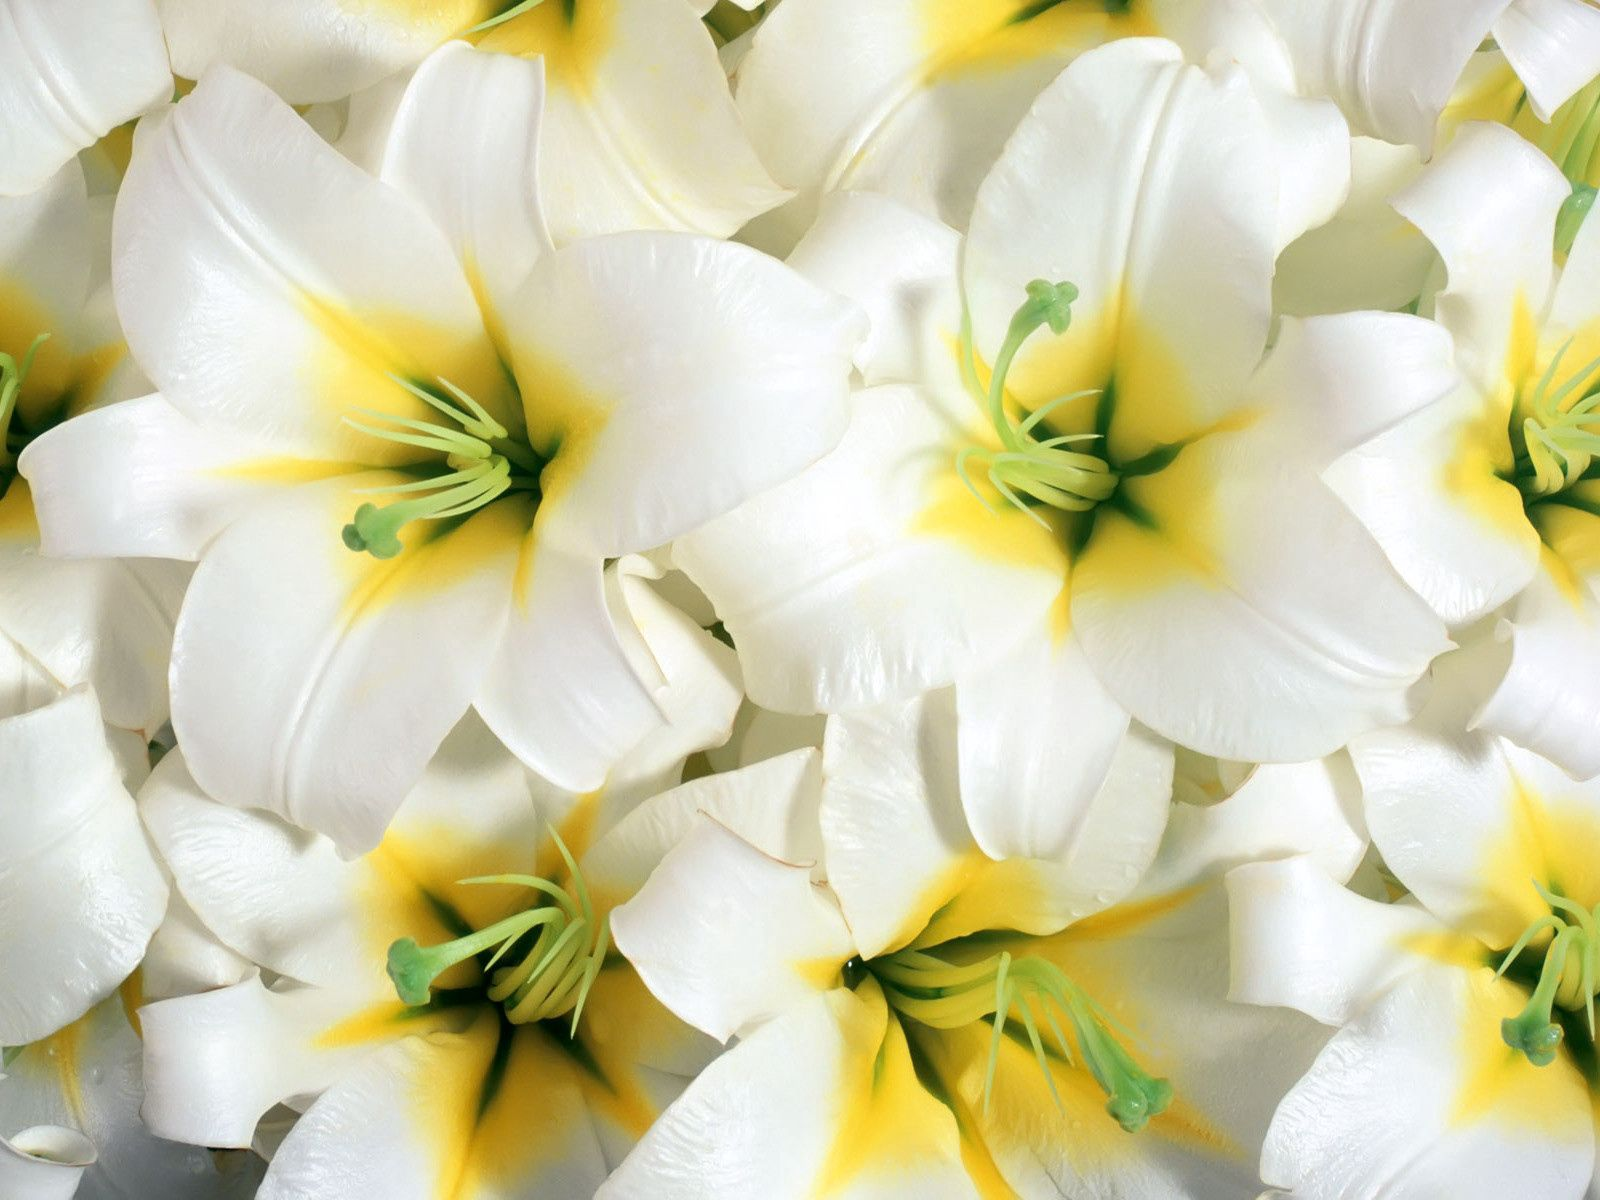 83356 download wallpaper Flowers, Lilies, Close-Up, Stamens screensavers and pictures for free